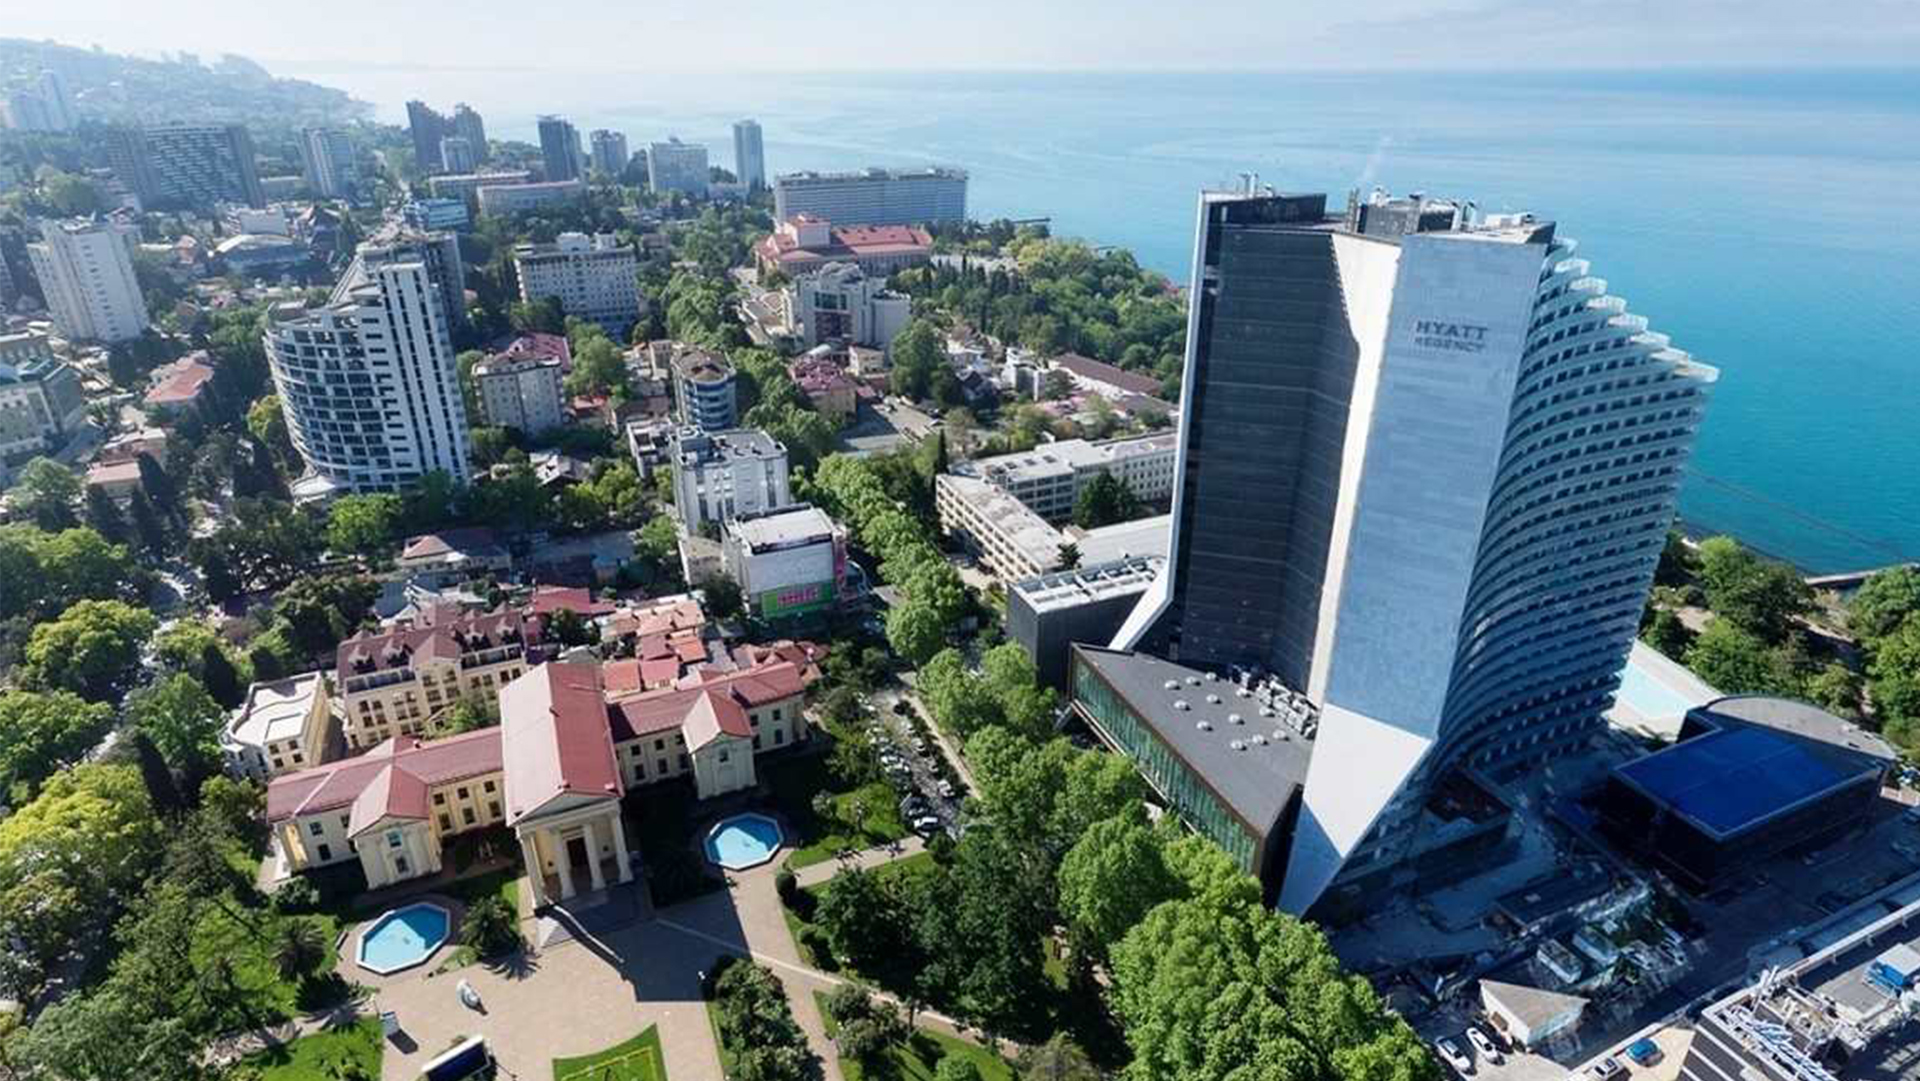 Hyatt Regency Sochi (Хаятт Ридженси Сочи)